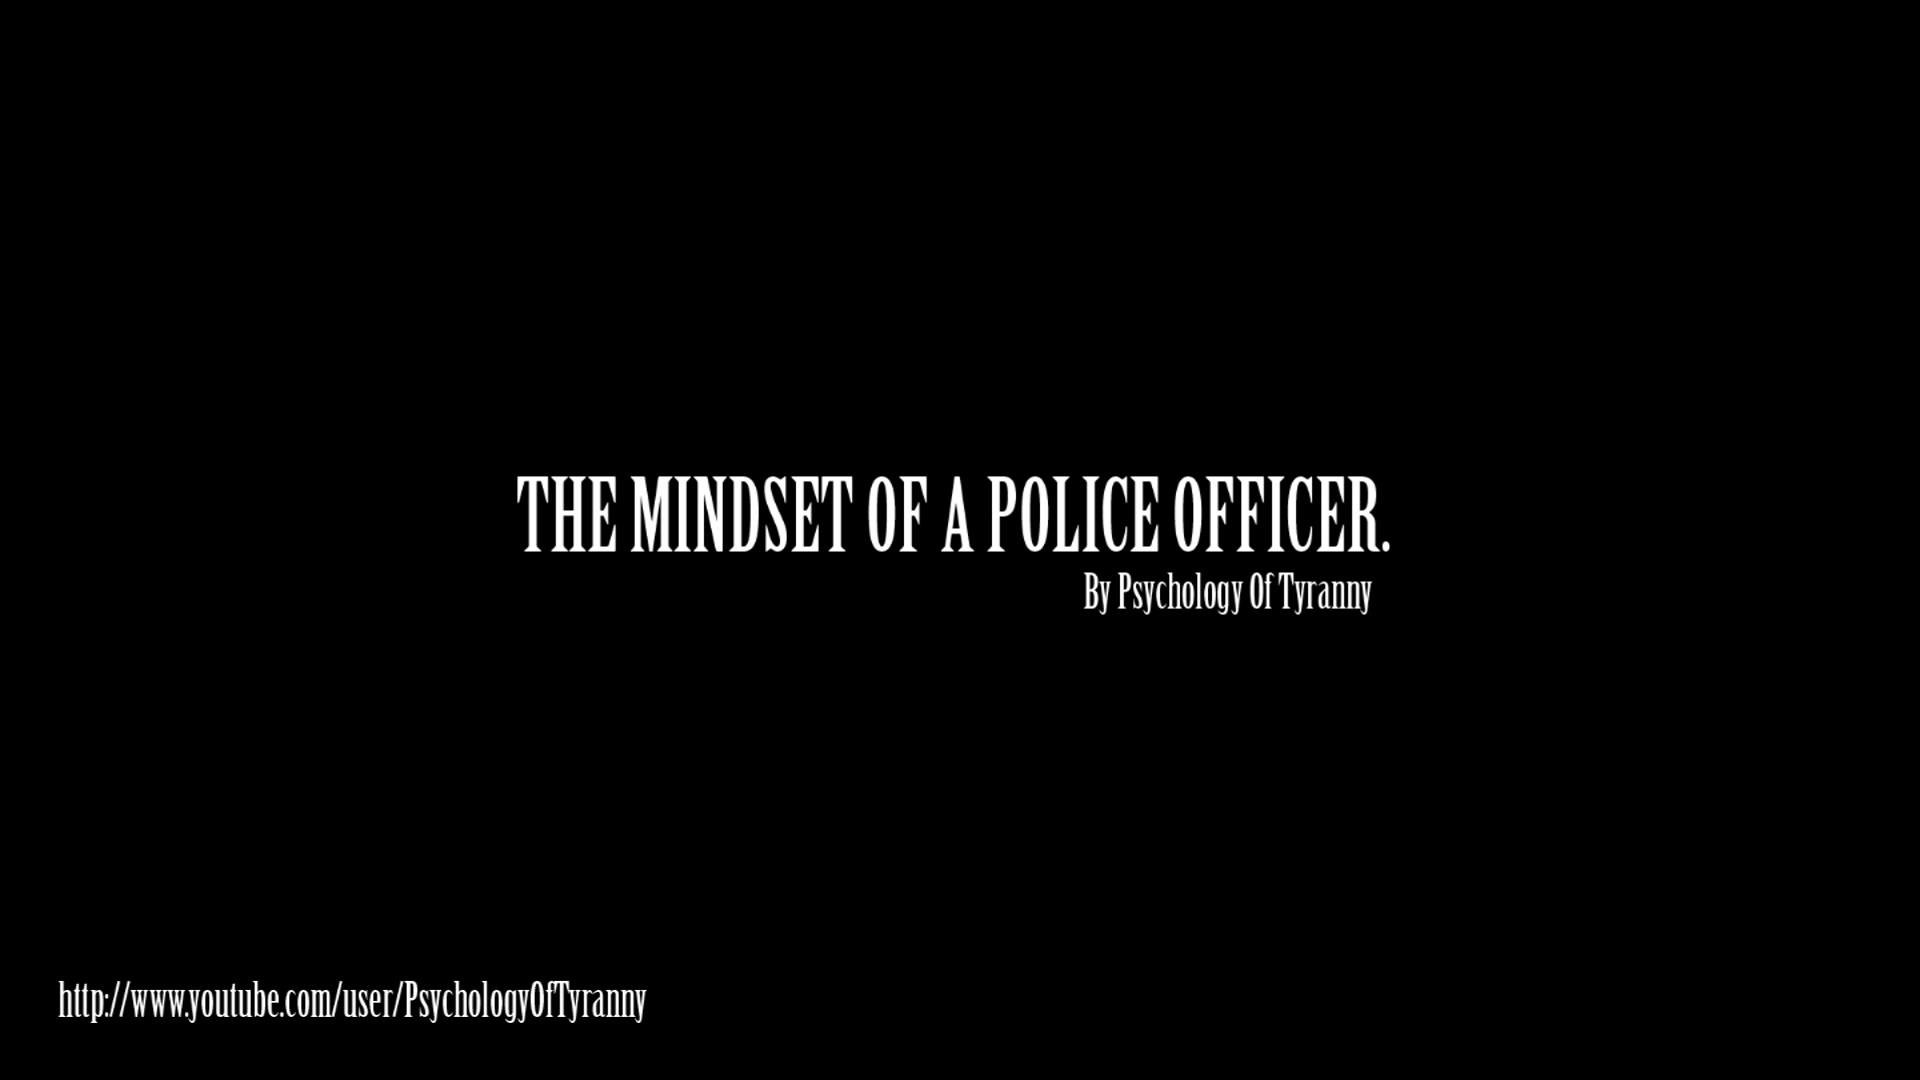 The Mindset Of A Police Officer (No Video)